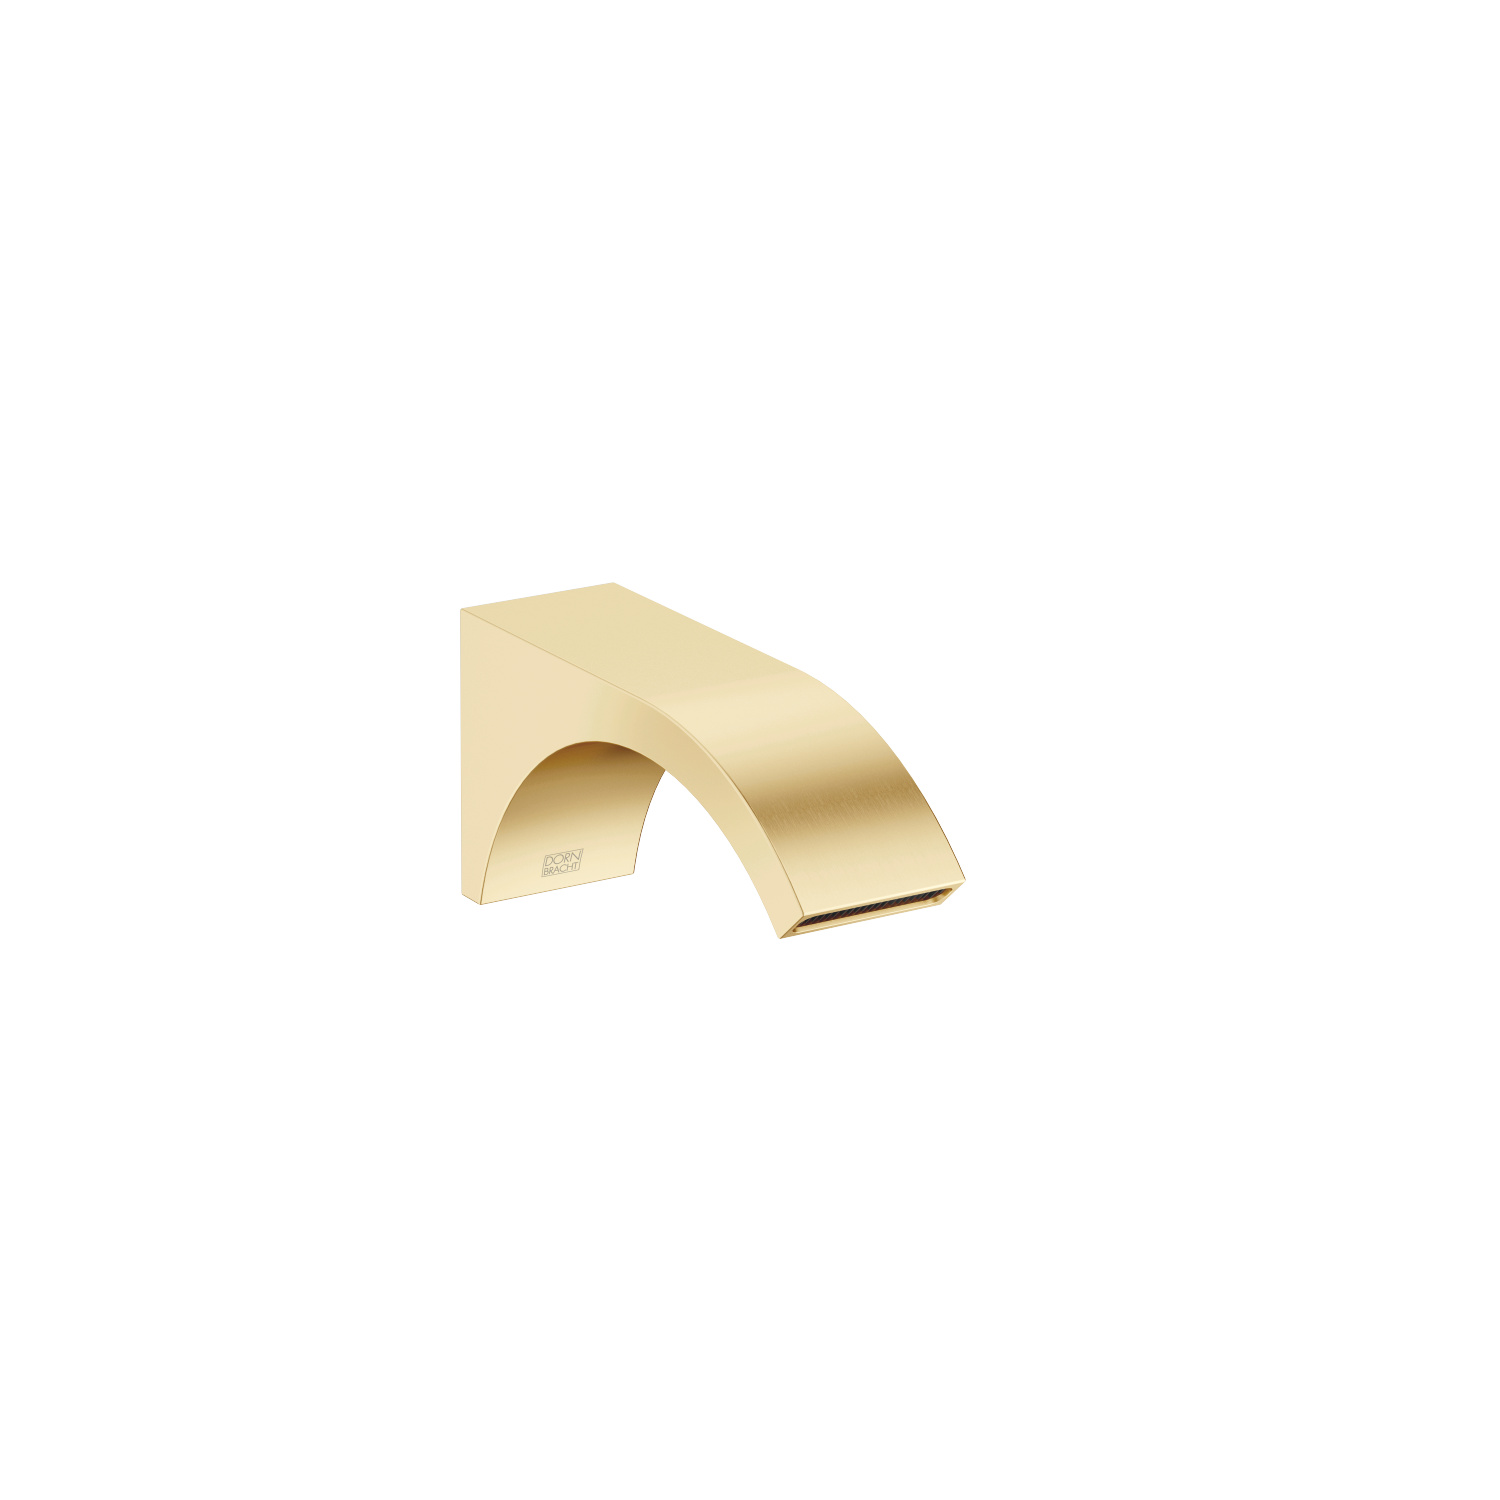 Wall-mounted basin spout without pop-up waste - brushed Durabrass